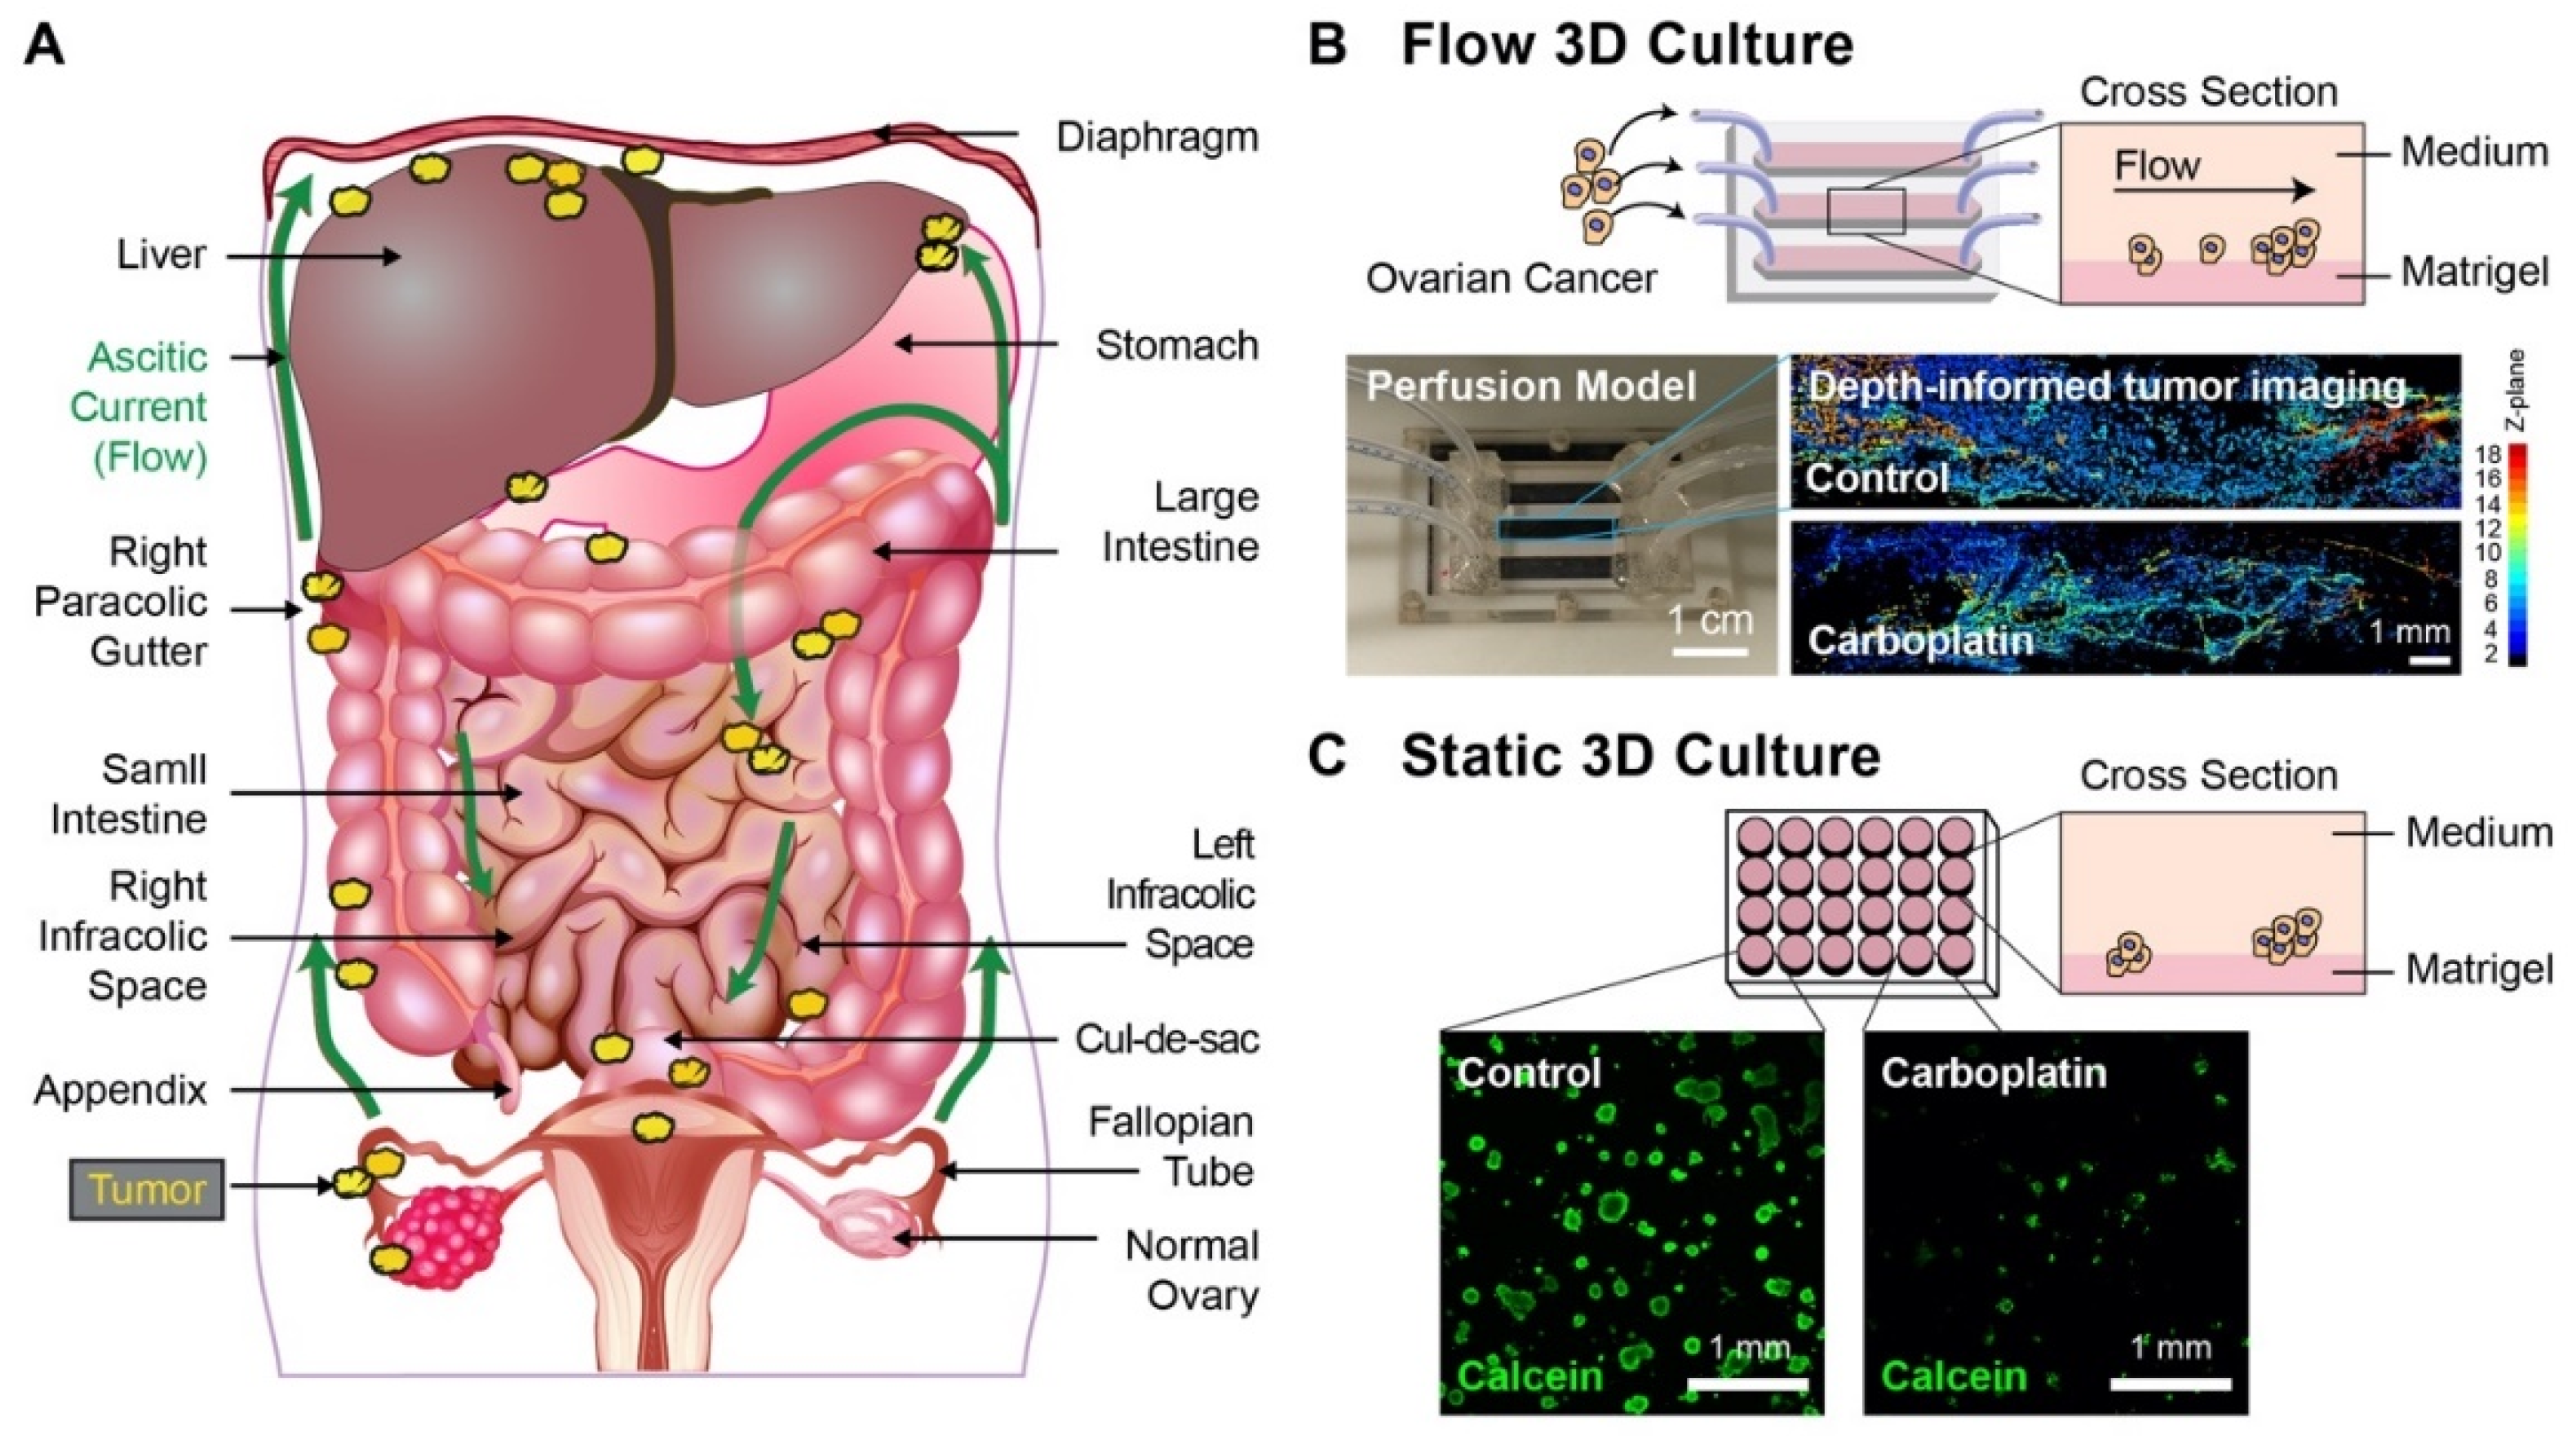 Jcm Free Full Text Flow Induced Shear Stress Confers Resistance To Carboplatin In An Adherent Three Dimensional Model For Ovarian Cancer A Role For Egfr Targeted Photoimmunotherapy Informed By Physical Stress